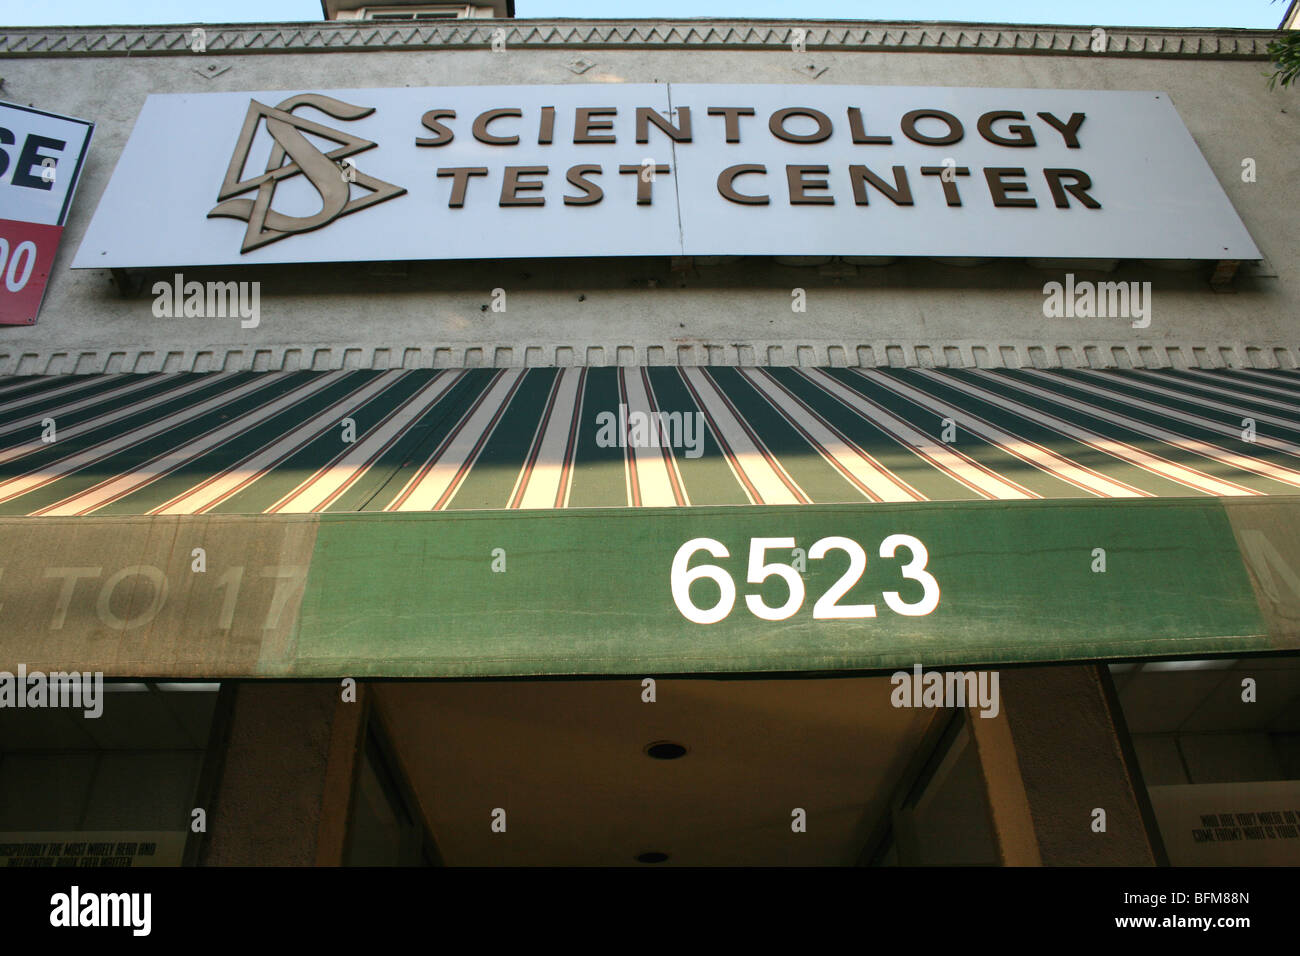 sign for a scientology test center in Los Angeles, CA - Stock Image